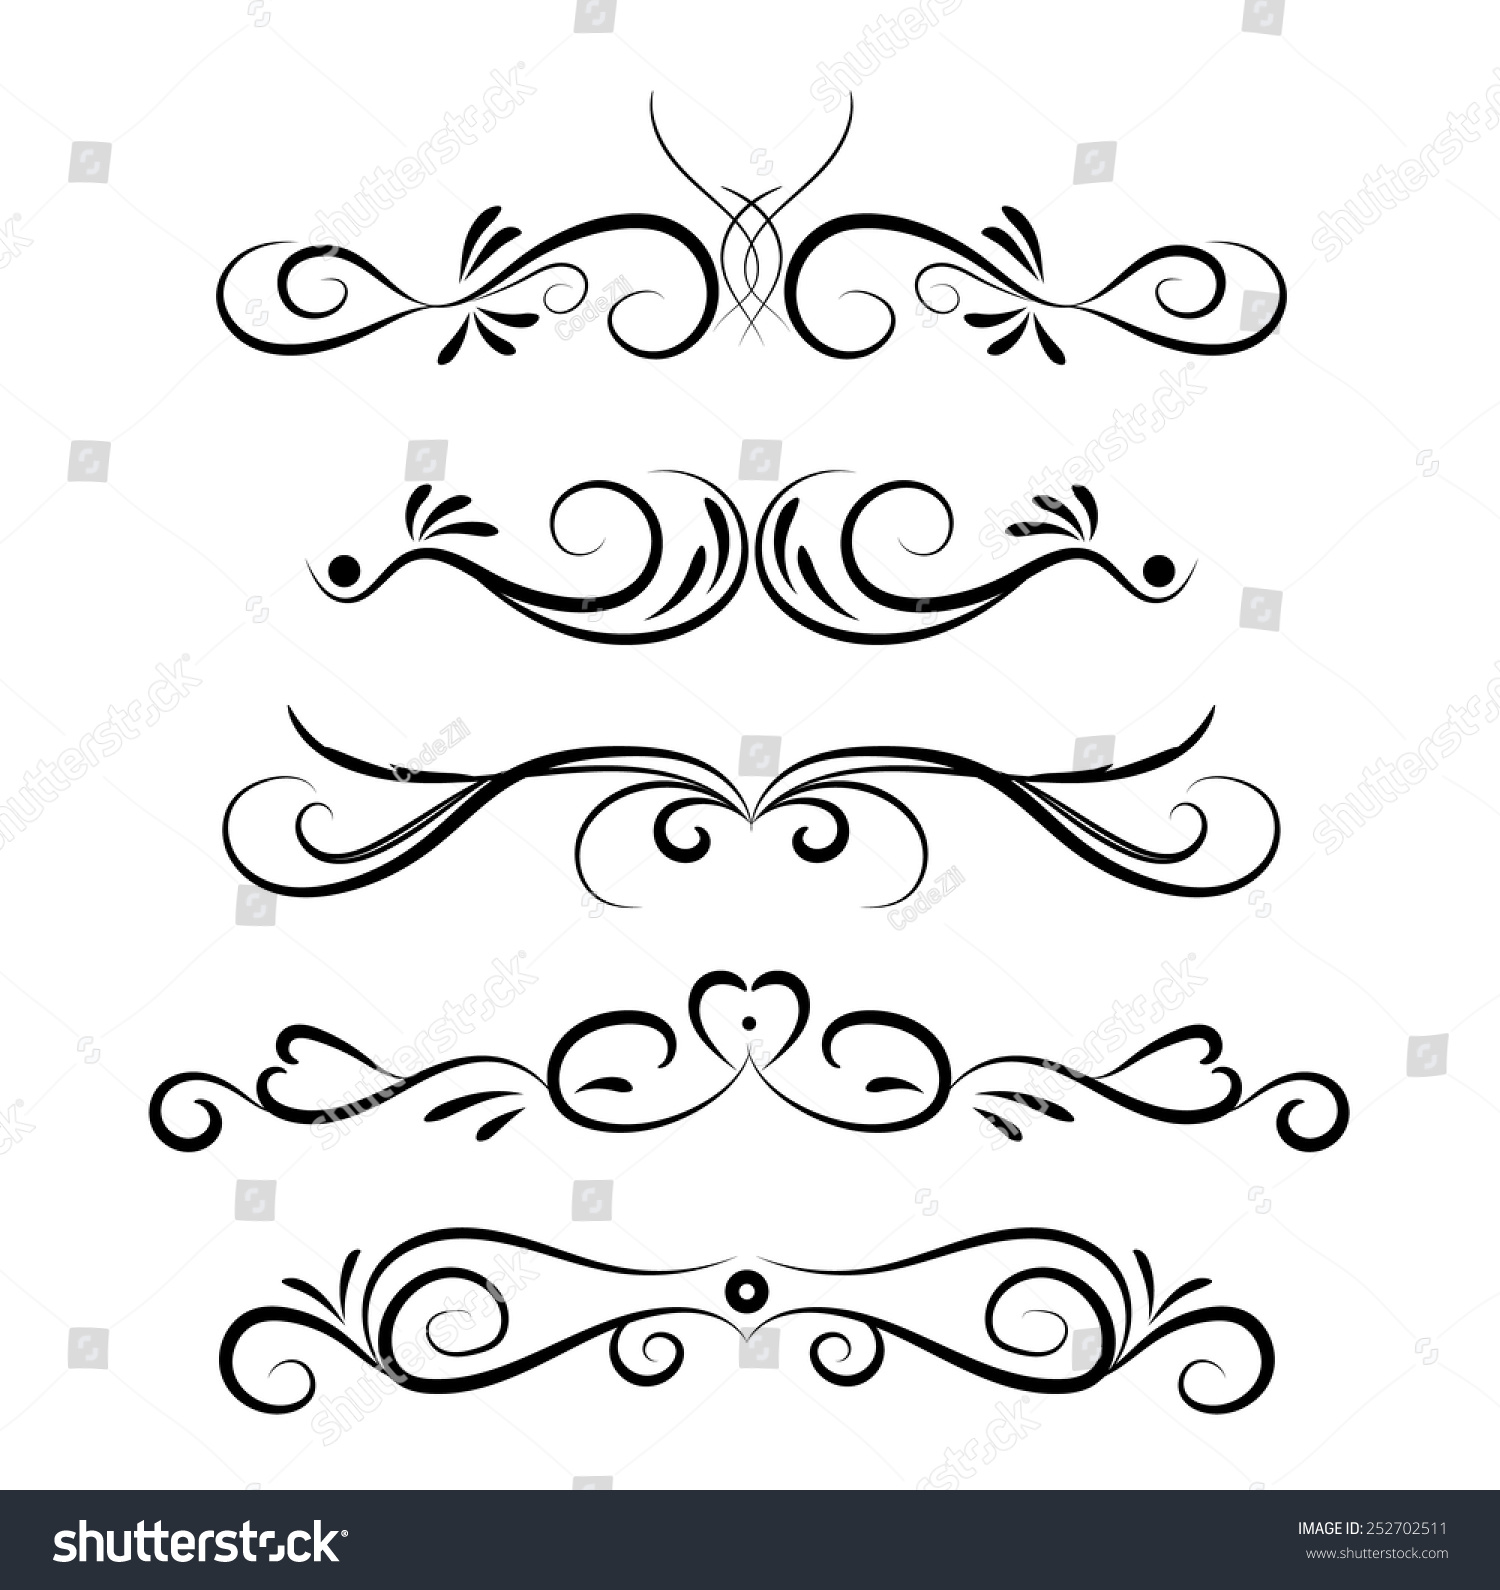 Line Art Card Design : Set of page decoration line drawing design elements